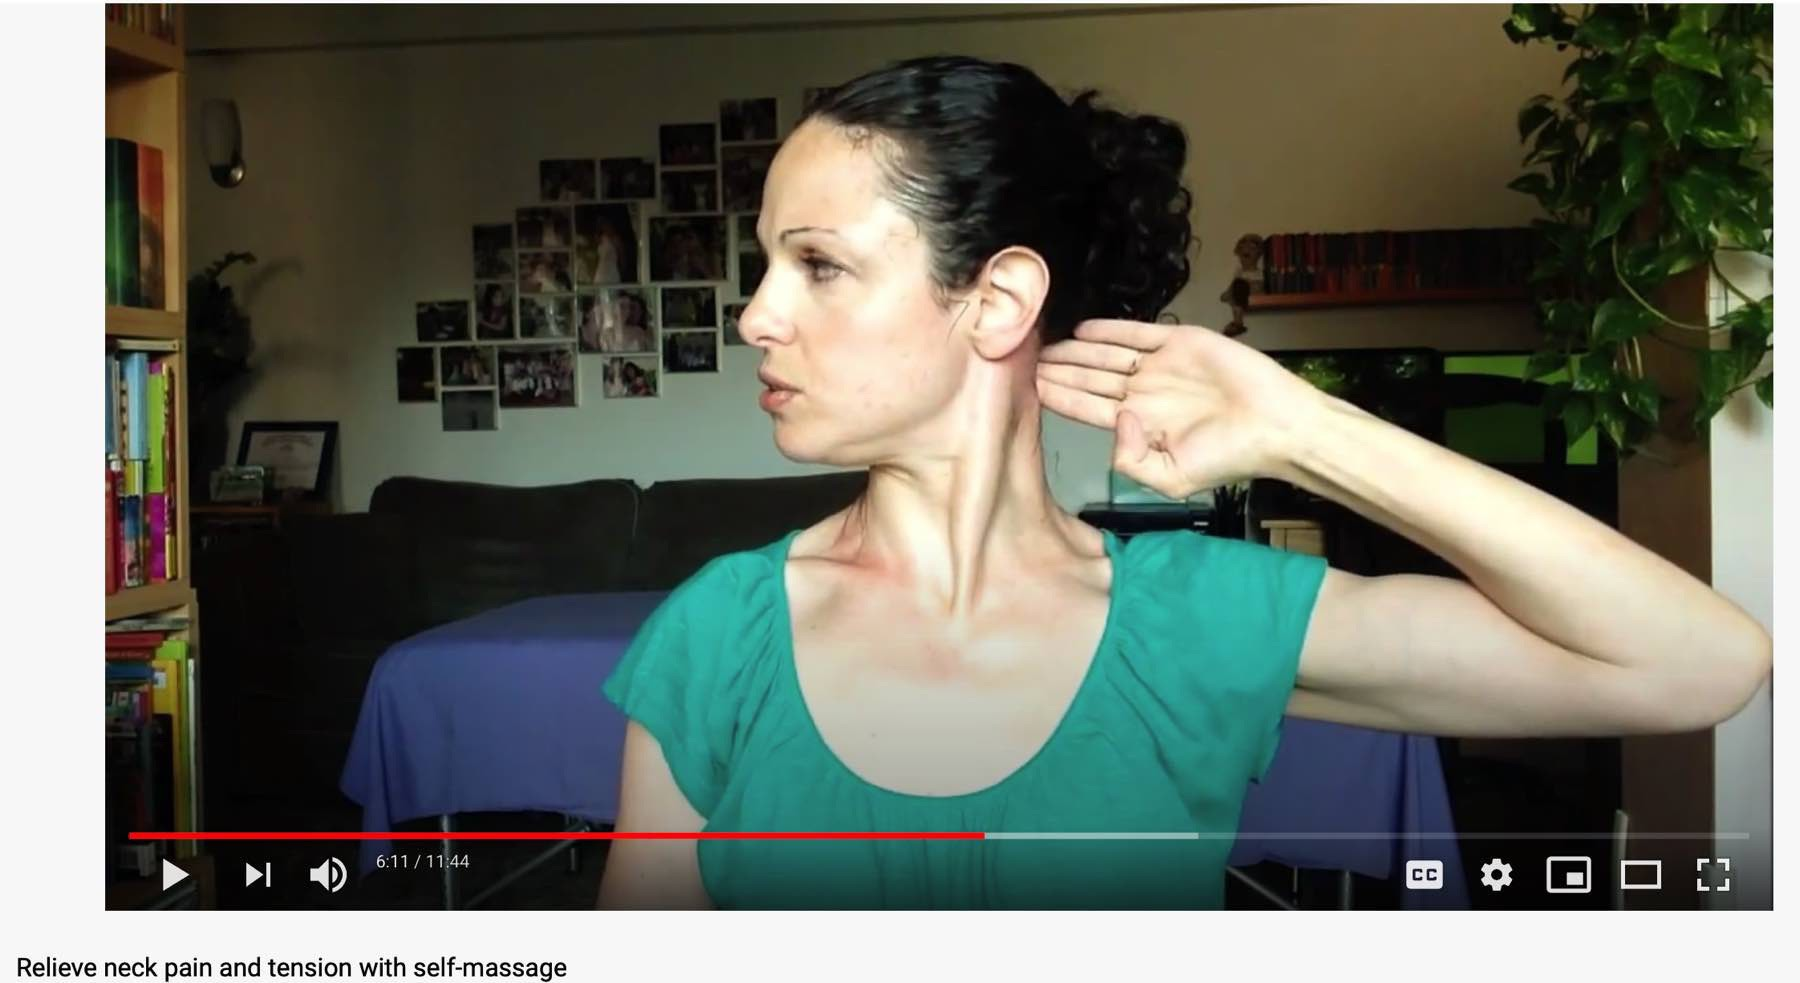 Neck massage screenshot.